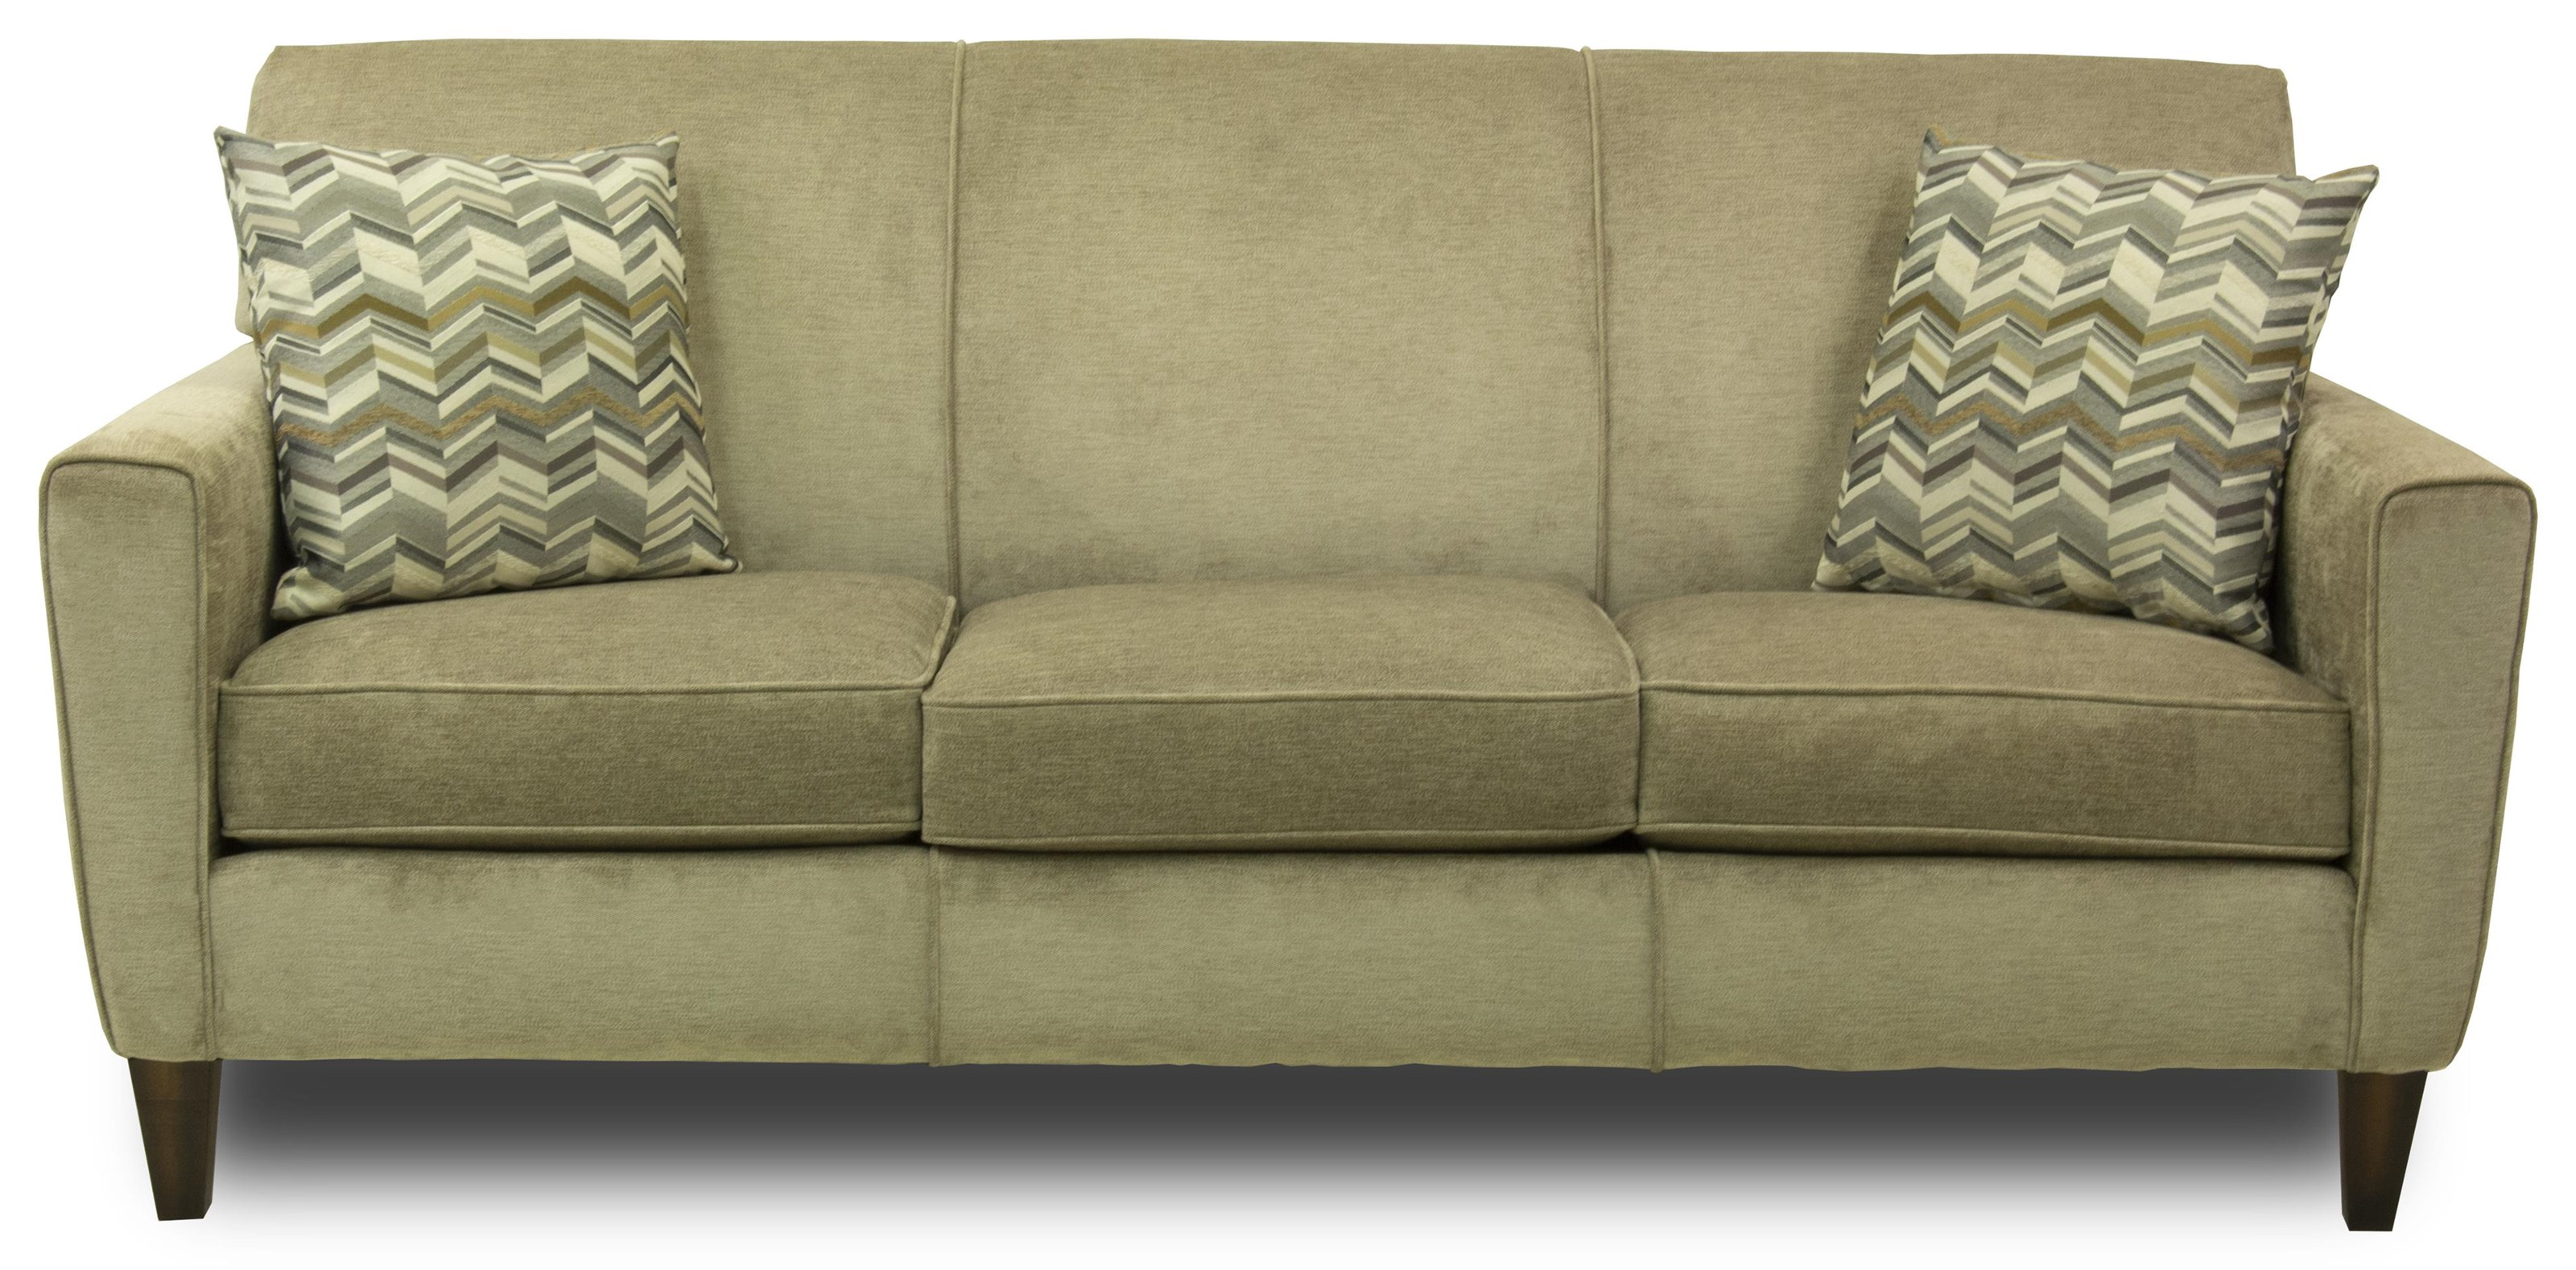 Flexsteel Digby Sofa Digby Contemporary Sectional Sofa